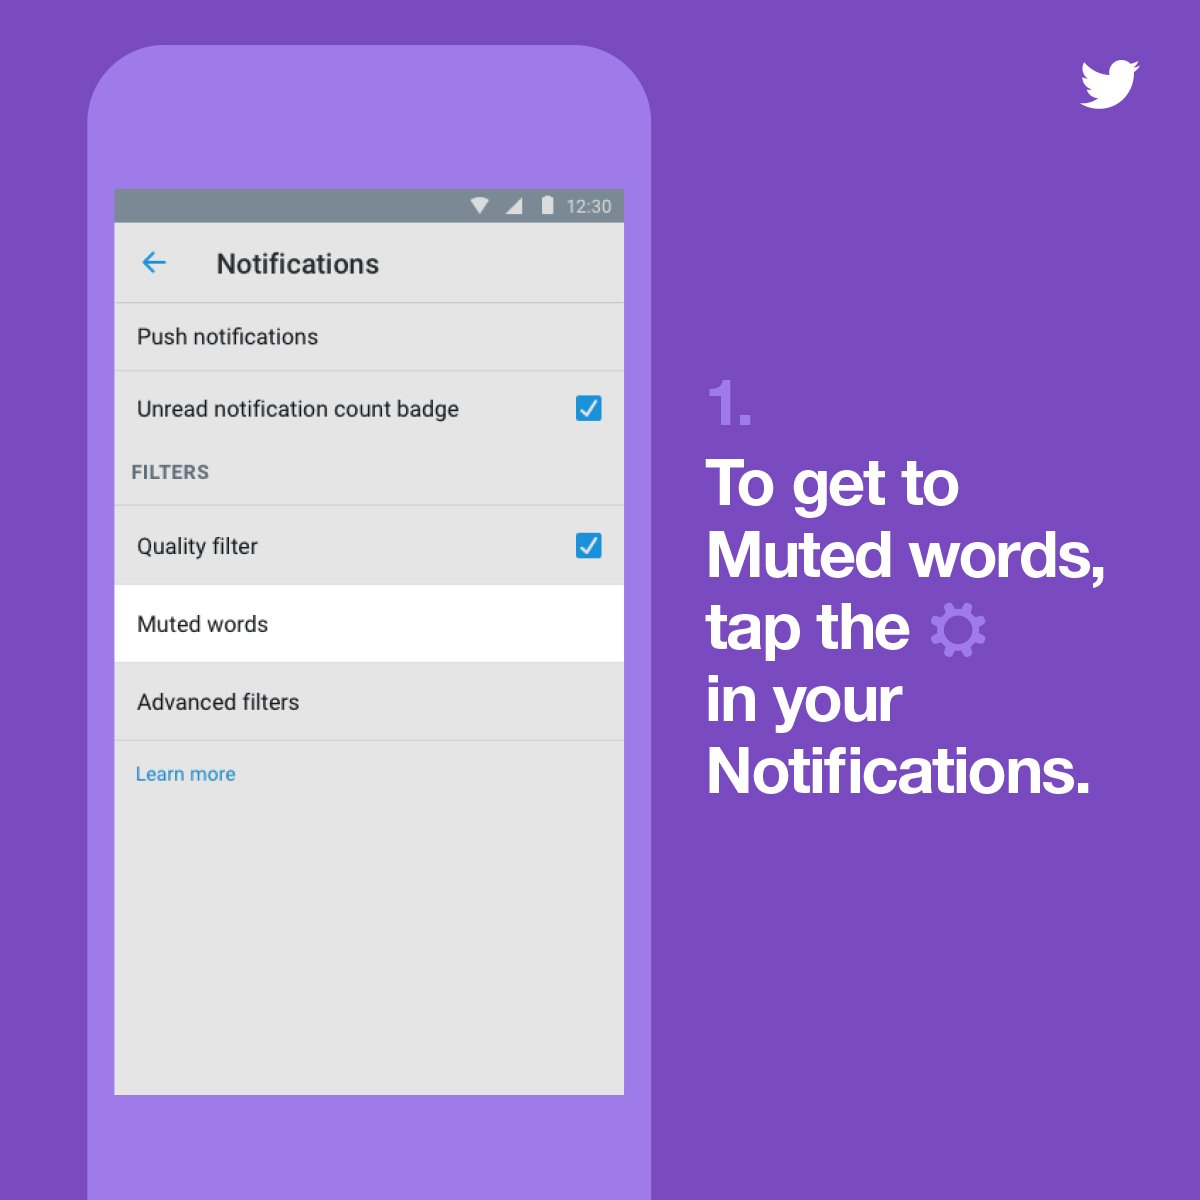 Mute words, phrases, hashtags & more for a specific time period in your timeline & notifications. On Web & Android. https://t.co/jhWKRu0cK1